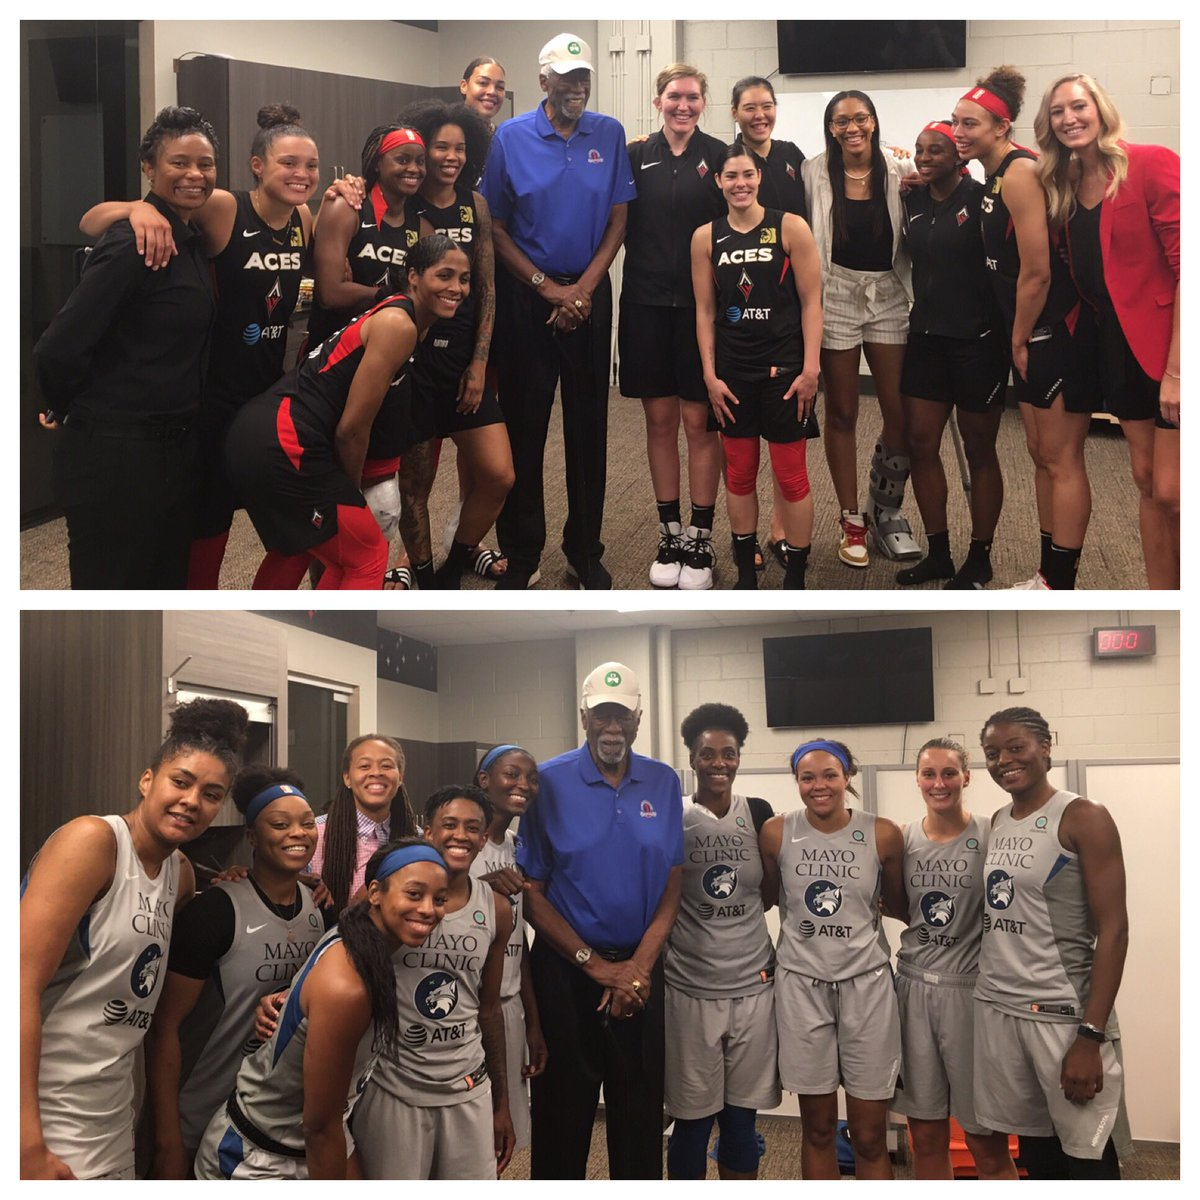 Had such a great time meeting the ⁦@WNBA⁩ players ⁦@LVAces⁩ & ⁦@minnesotalynx⁩ last week wish I could have stayed longer to watch in person #WNBAAllStar